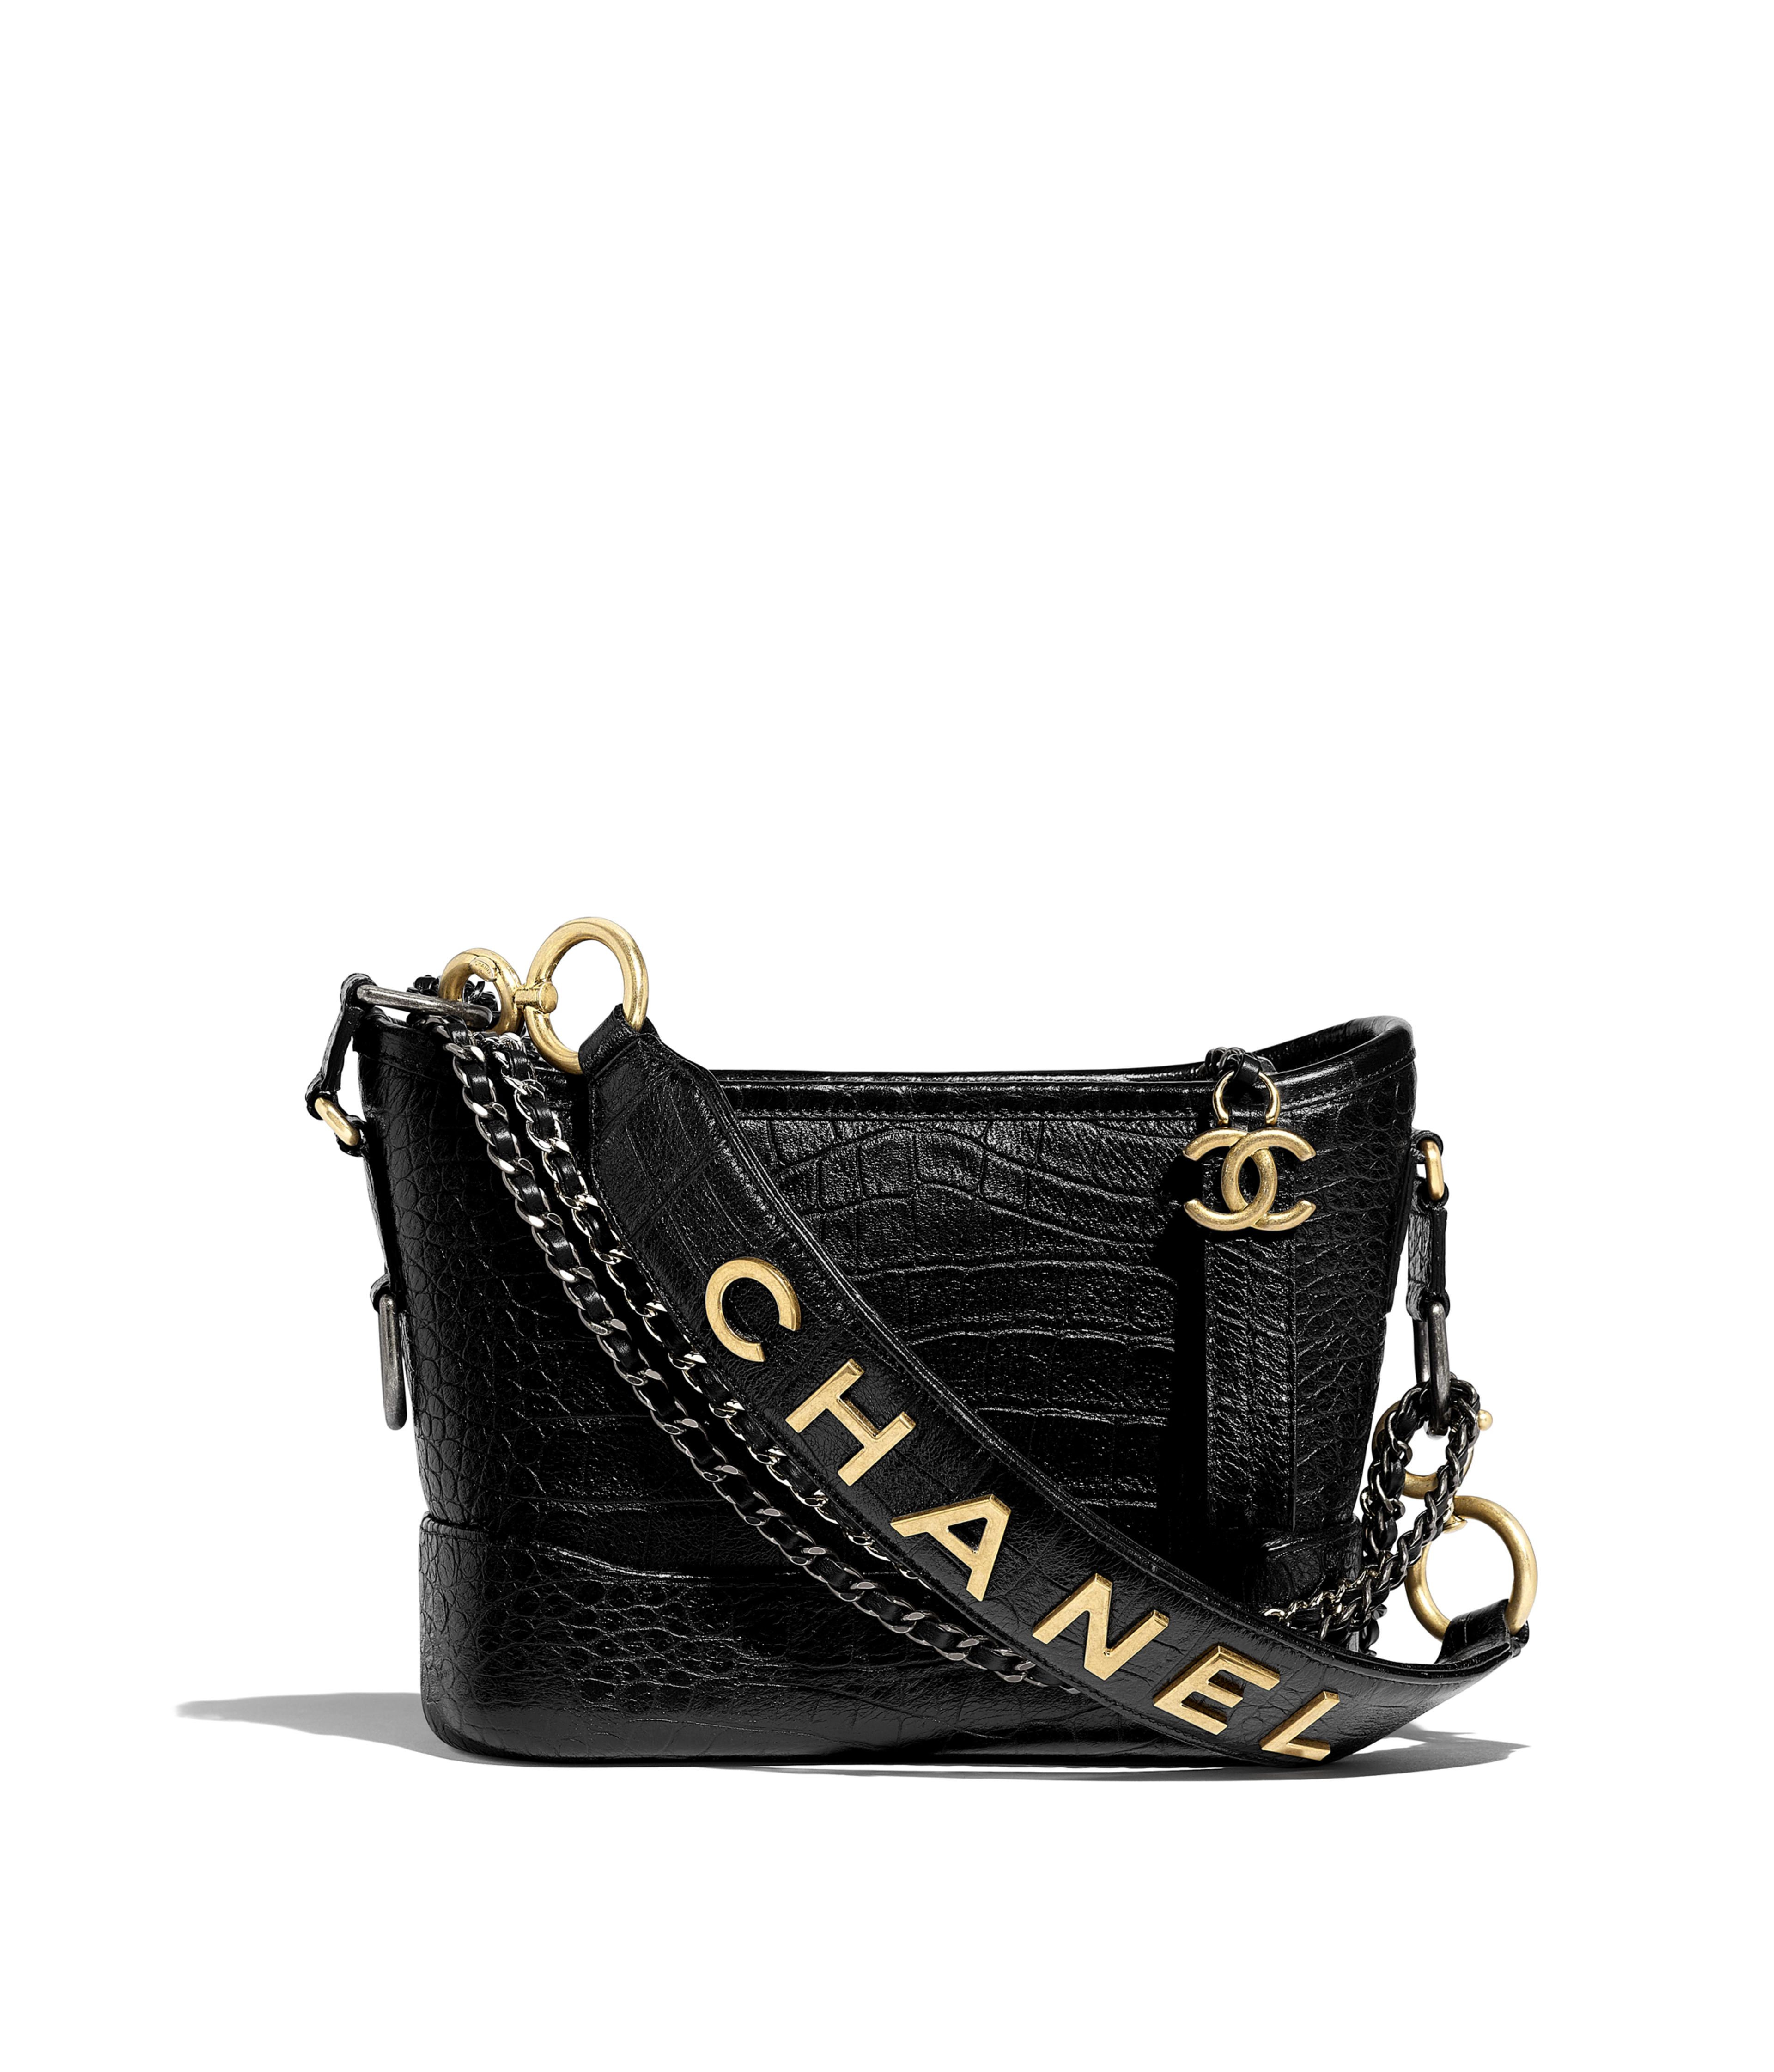 1a0da231fa85 CHANEL'S GABRIELLE Small Hobo Bag Crocodile Embossed Calfskin, Gold-Tone &  Silver-Tone Metal, Black Ref. AS0865B0081594305